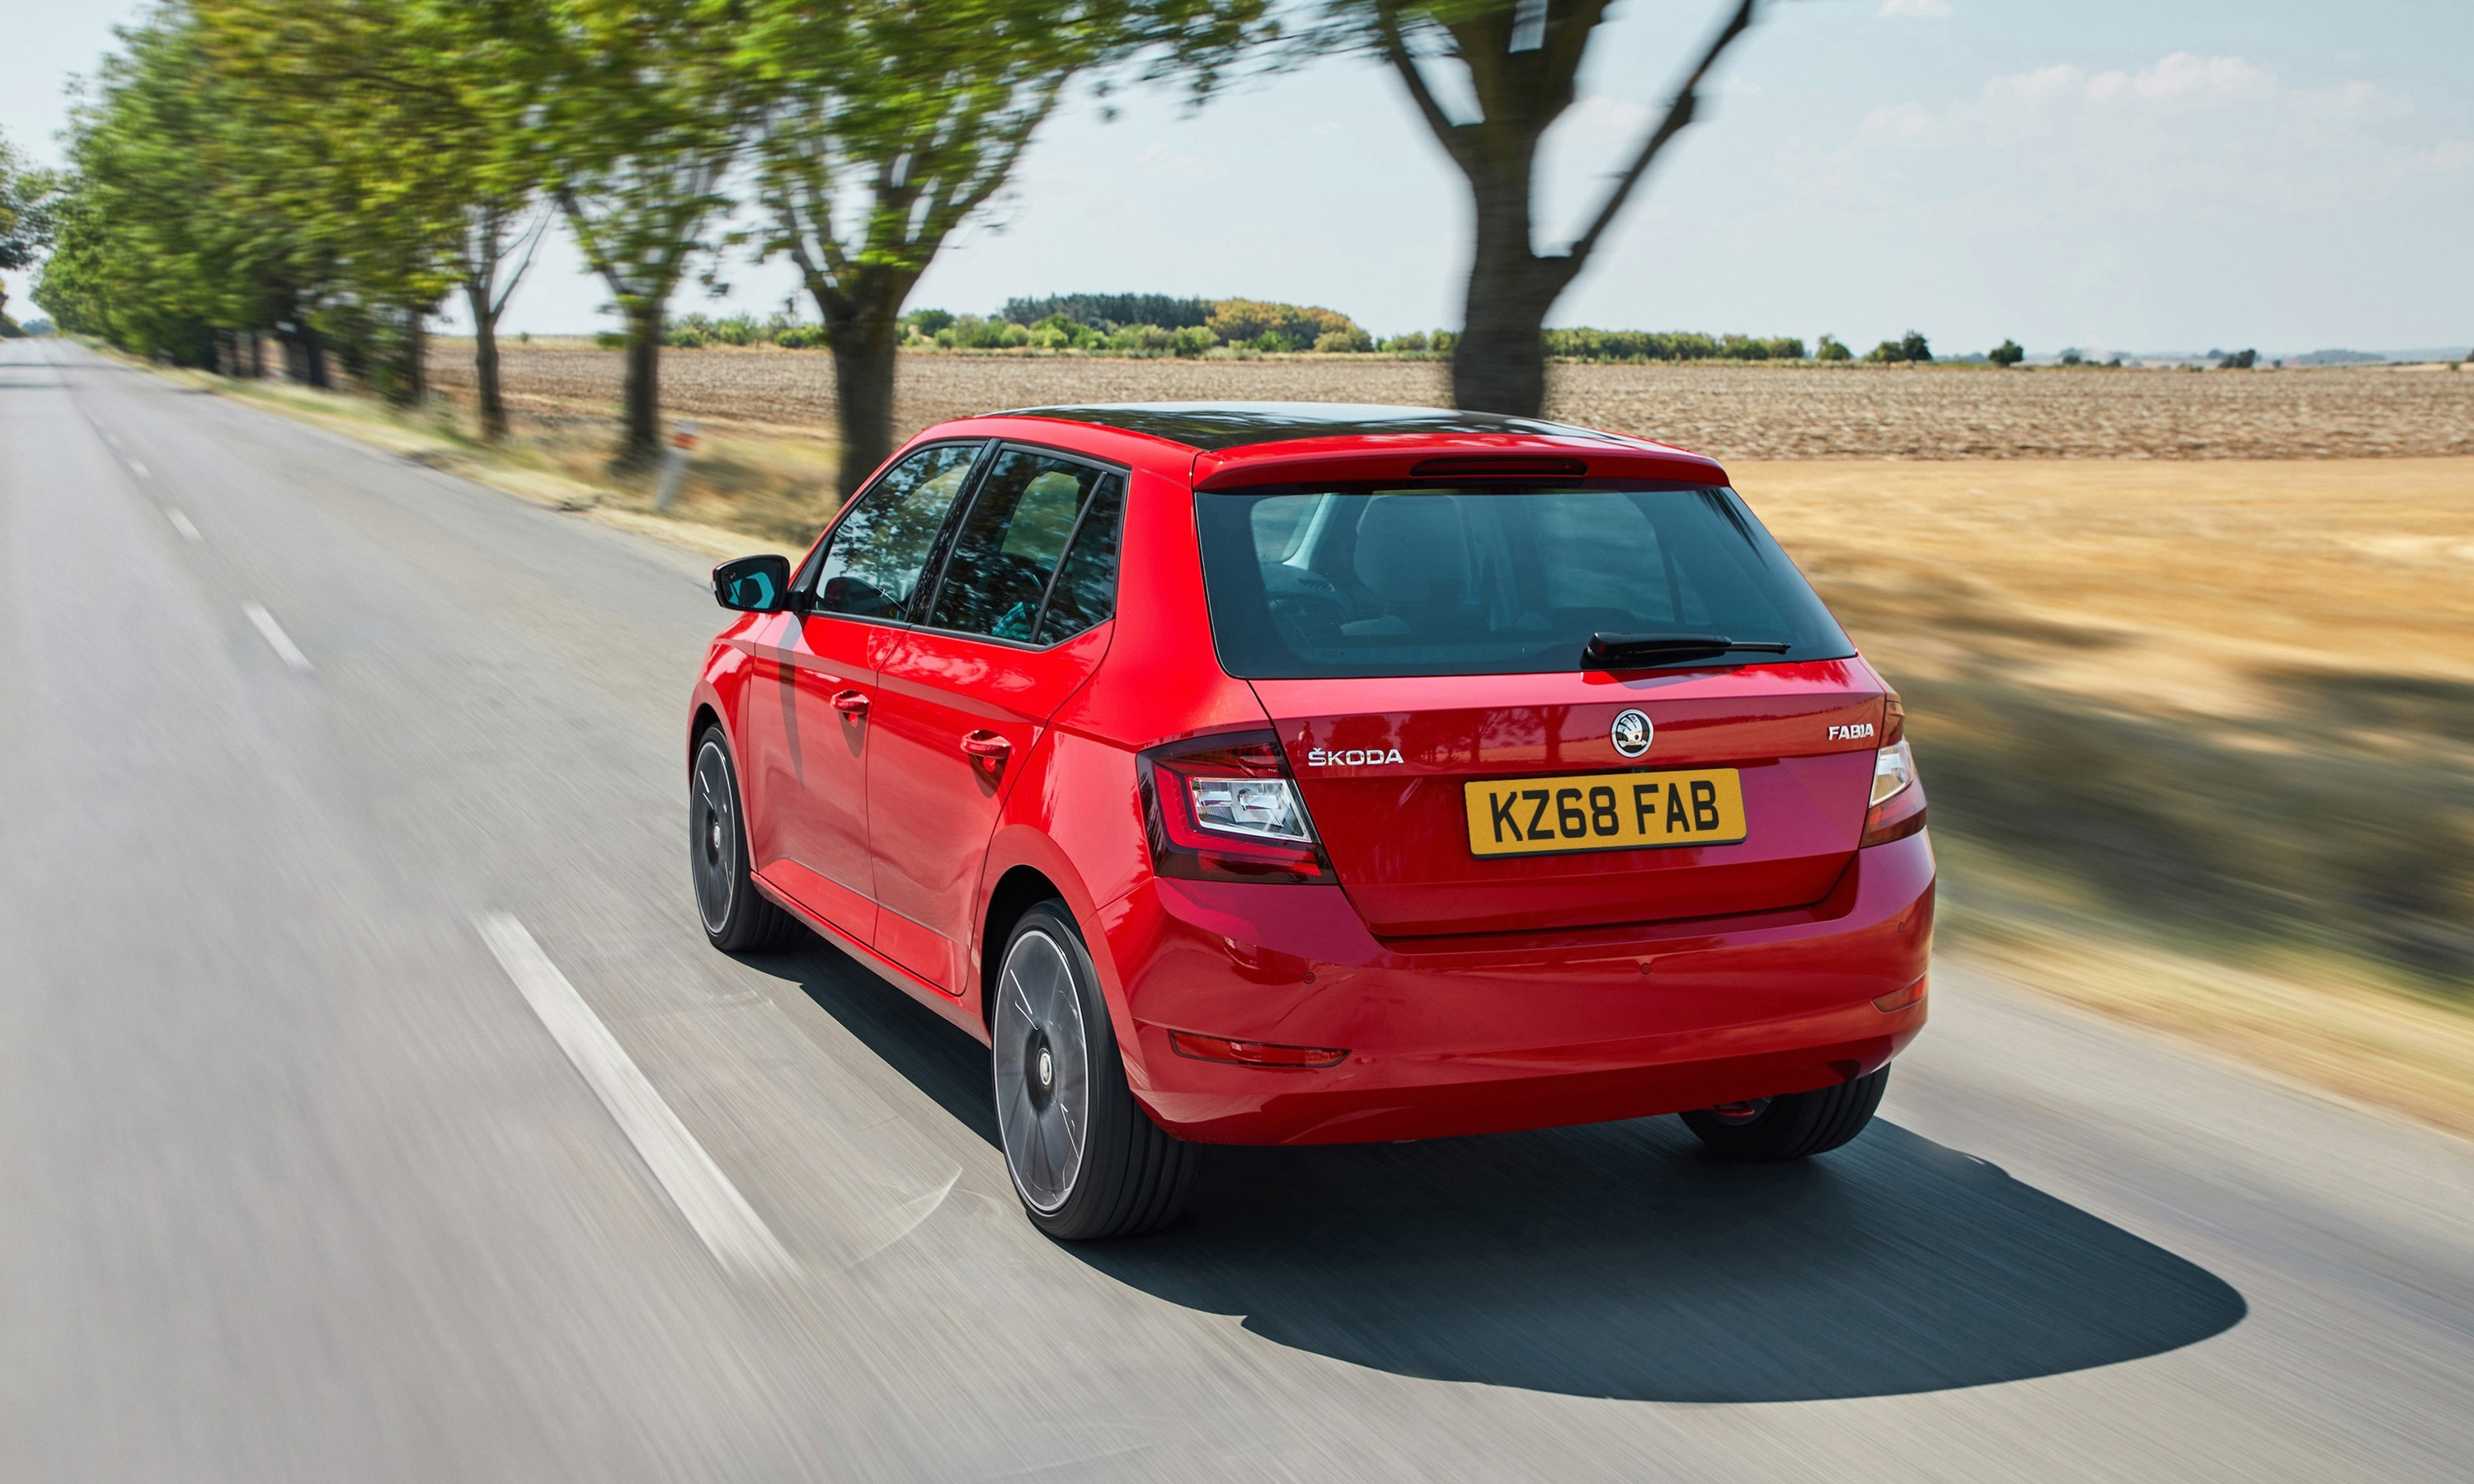 Rear view of a red Skoda Fabia driving on a road